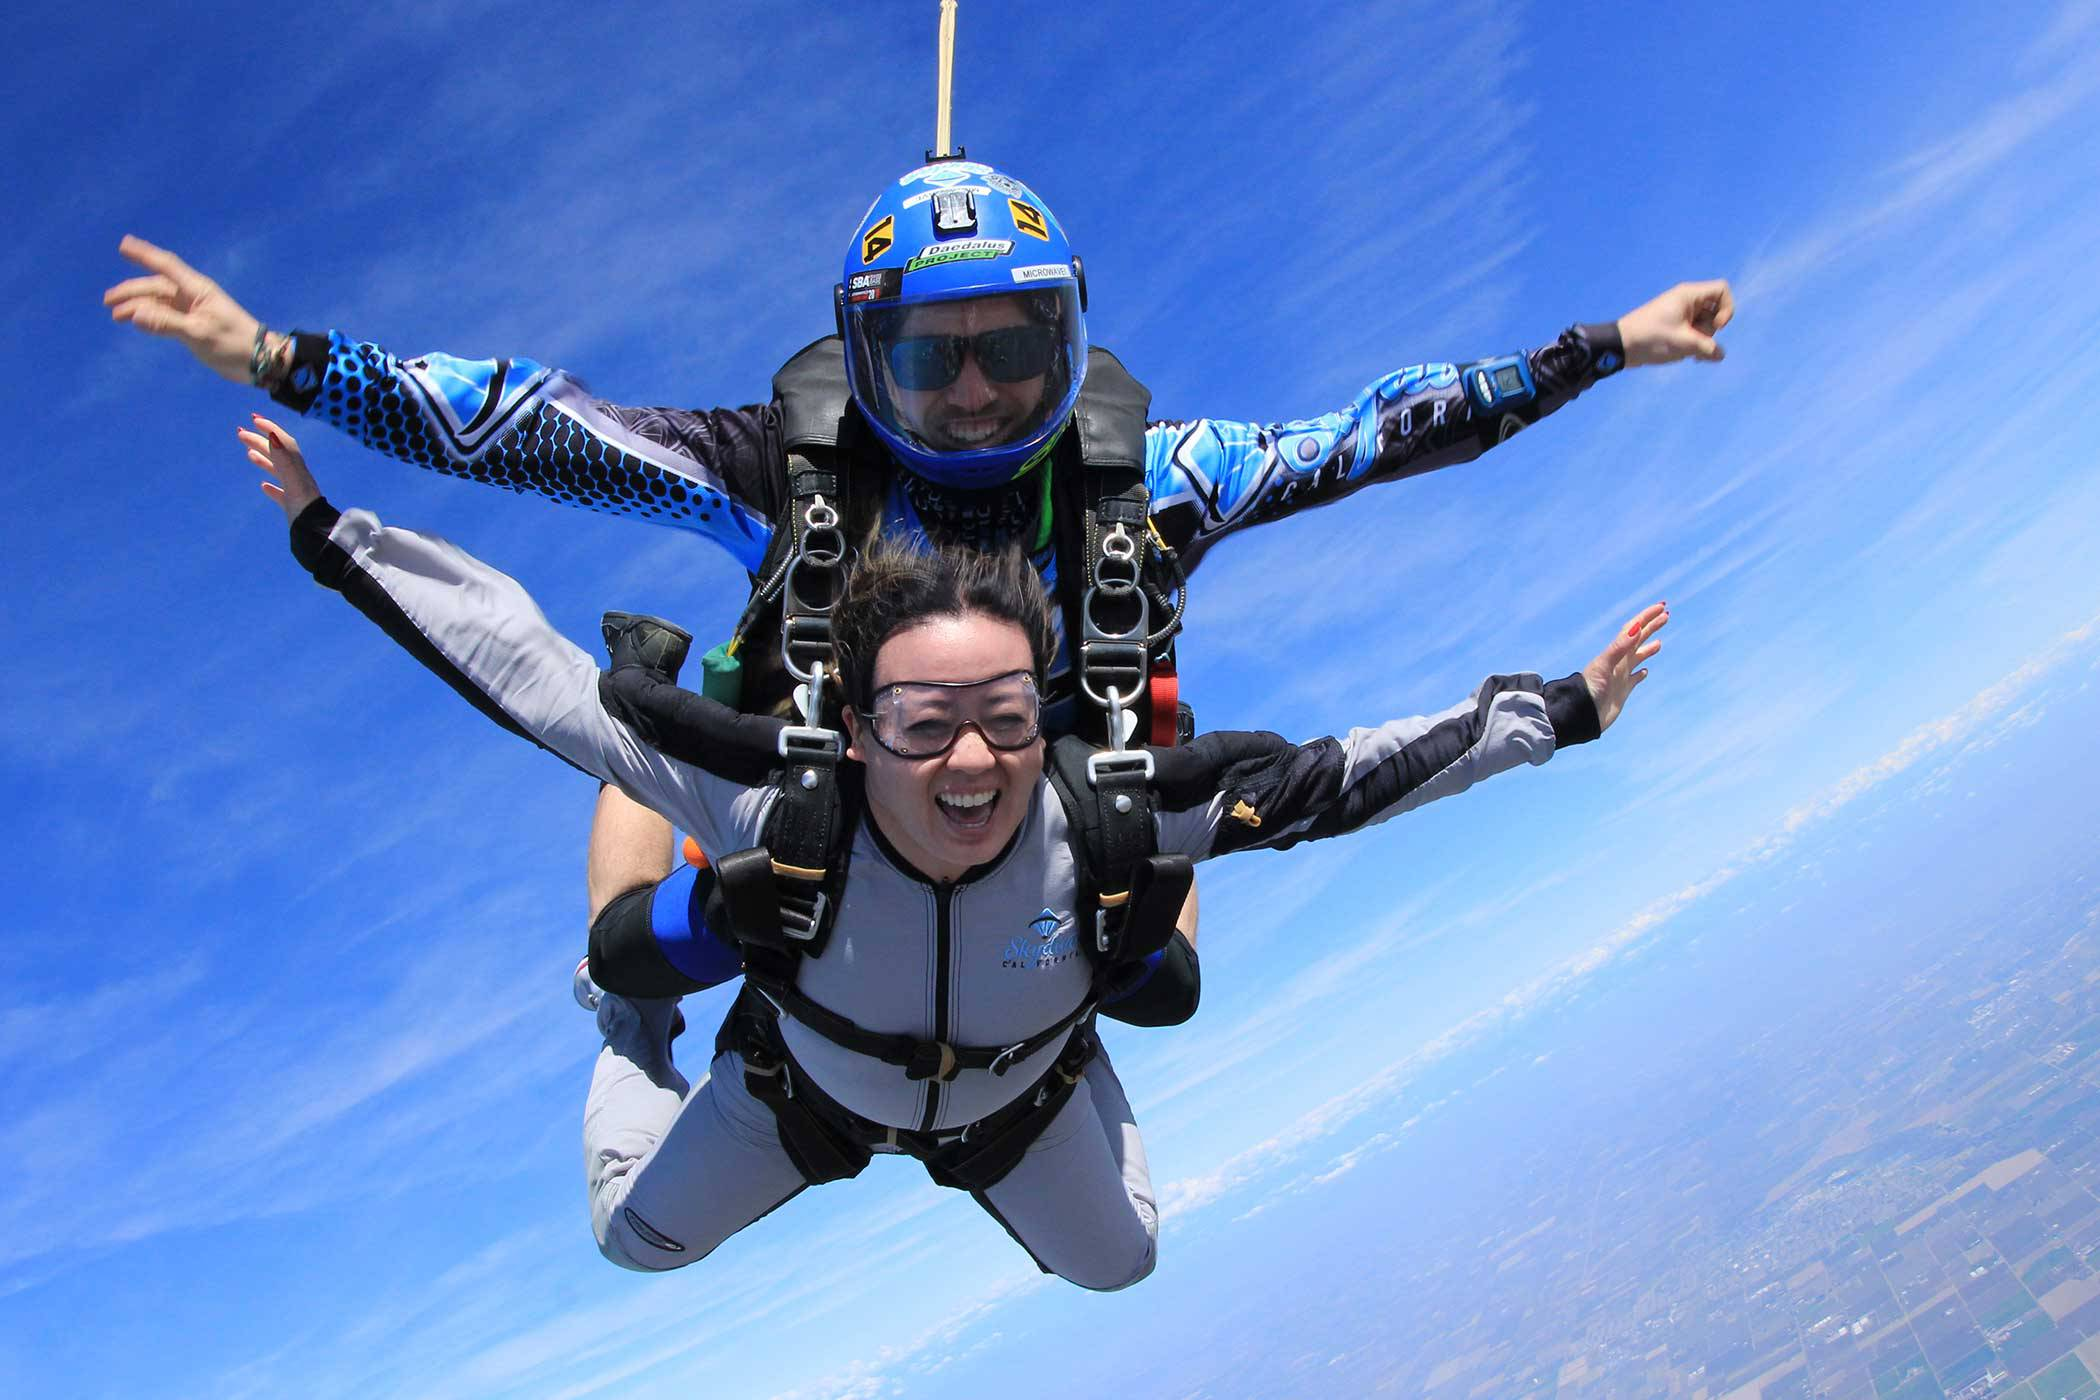 Tandem skydiver smiling from the excitement of free fall